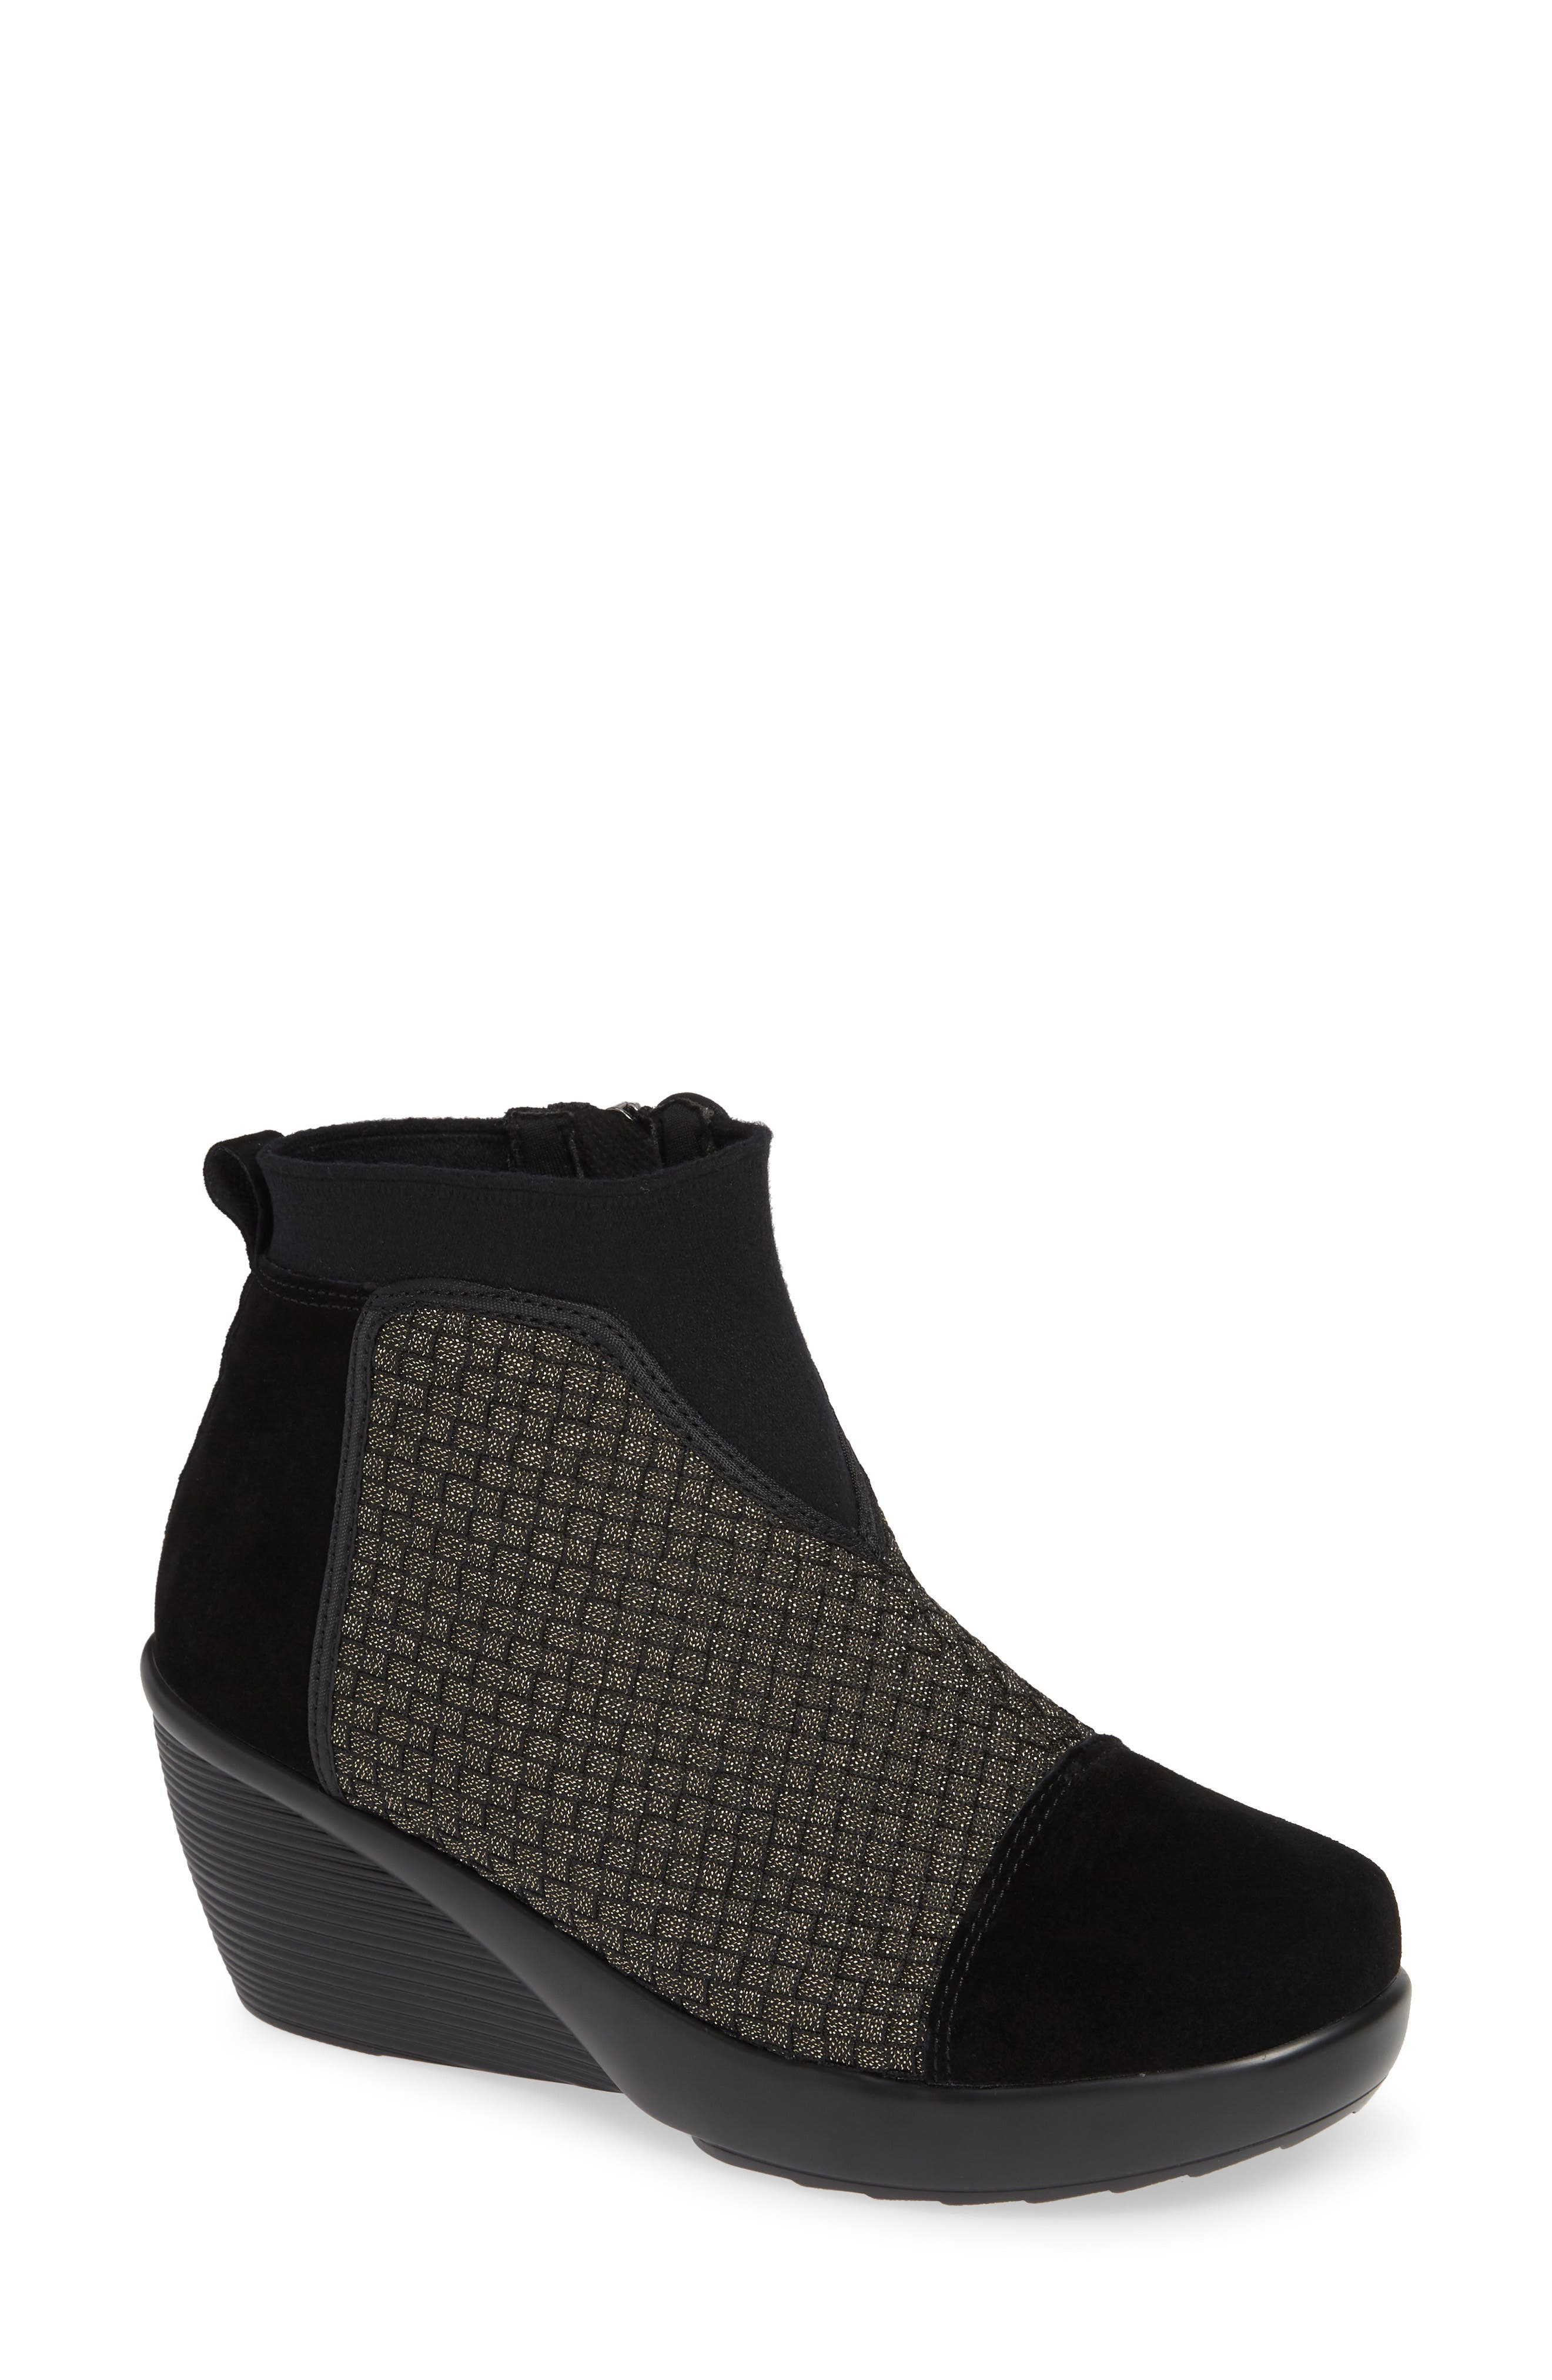 Zoe Wedge Bootie,                             Main thumbnail 1, color,                             GOLD BLACK SHIMMER LEATHER